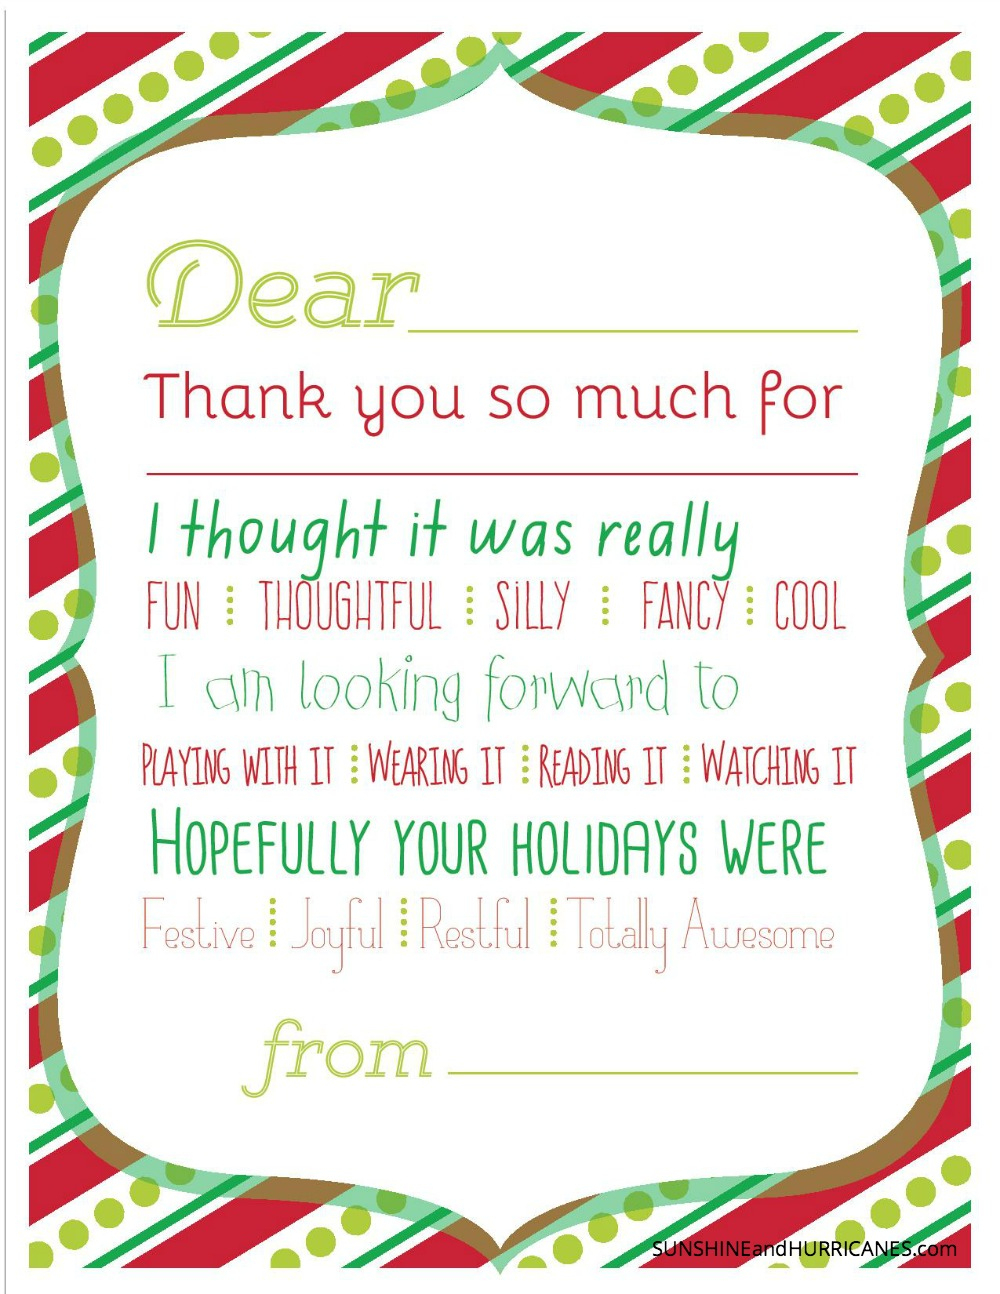 Christmas Printable Thank You Cards For Kids - Christmas Cards For Grandparents Free Printable